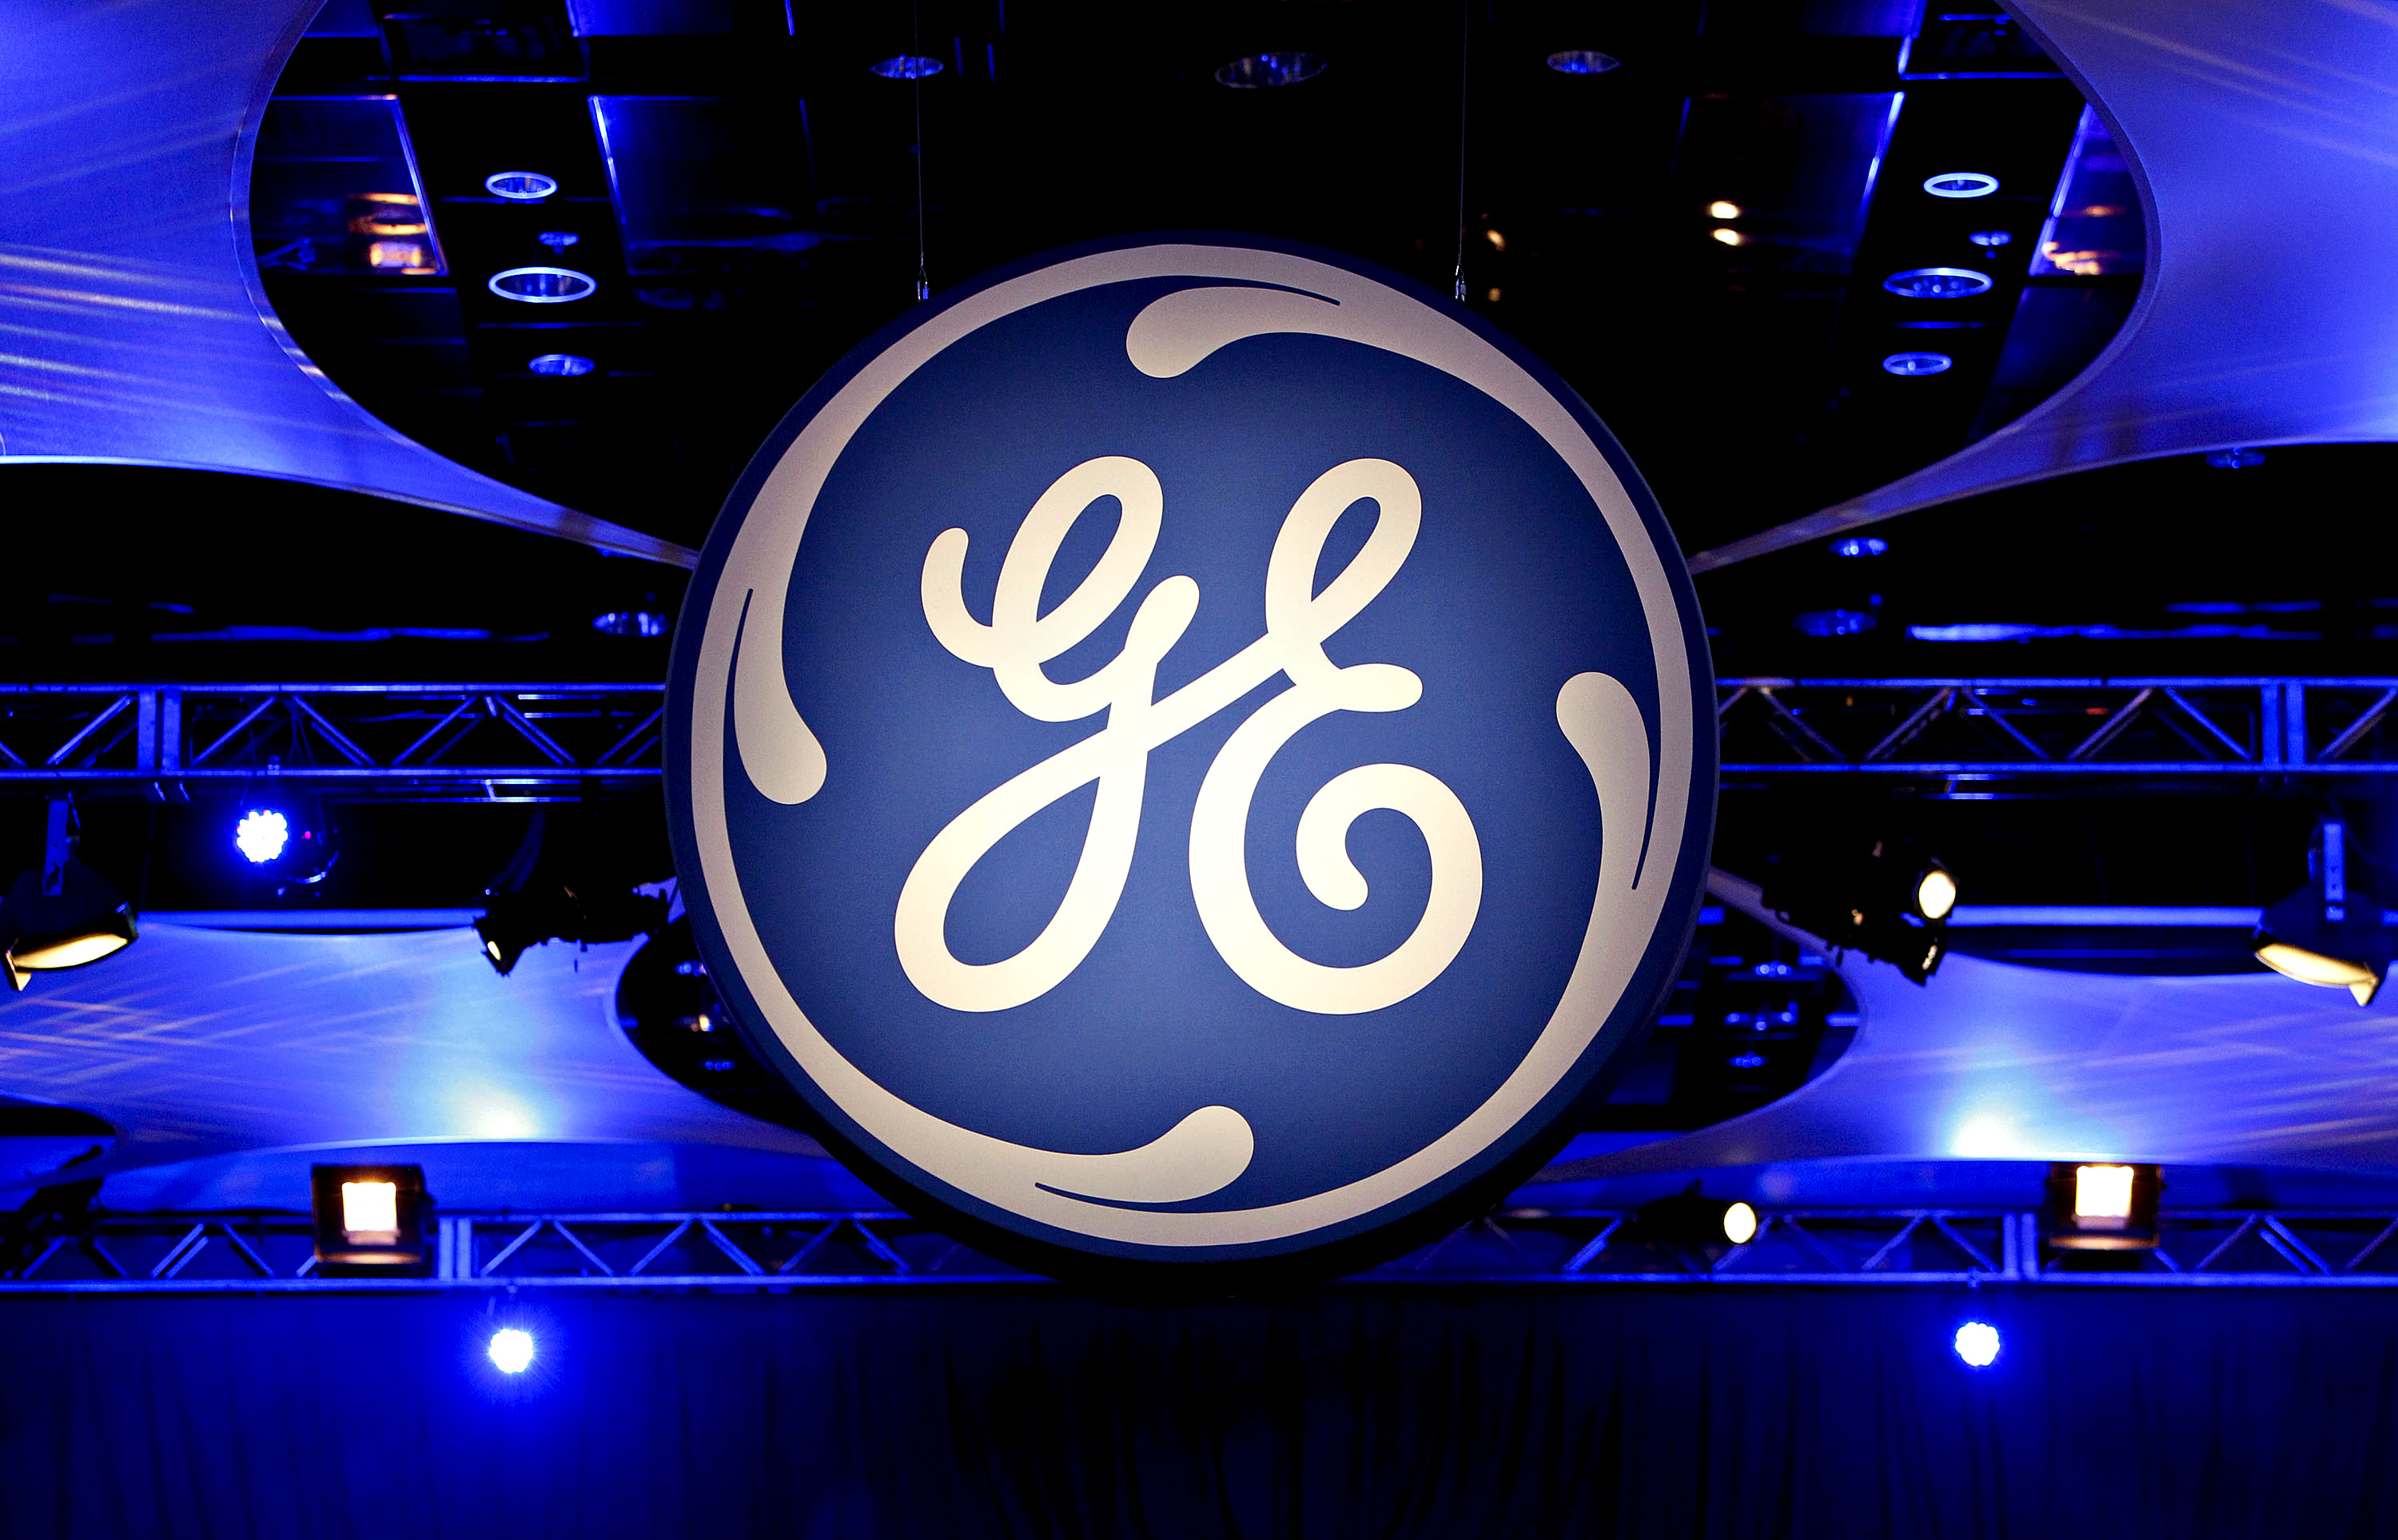 GE's CEO Larry Culp Could Make 2019 the Turnaround Year